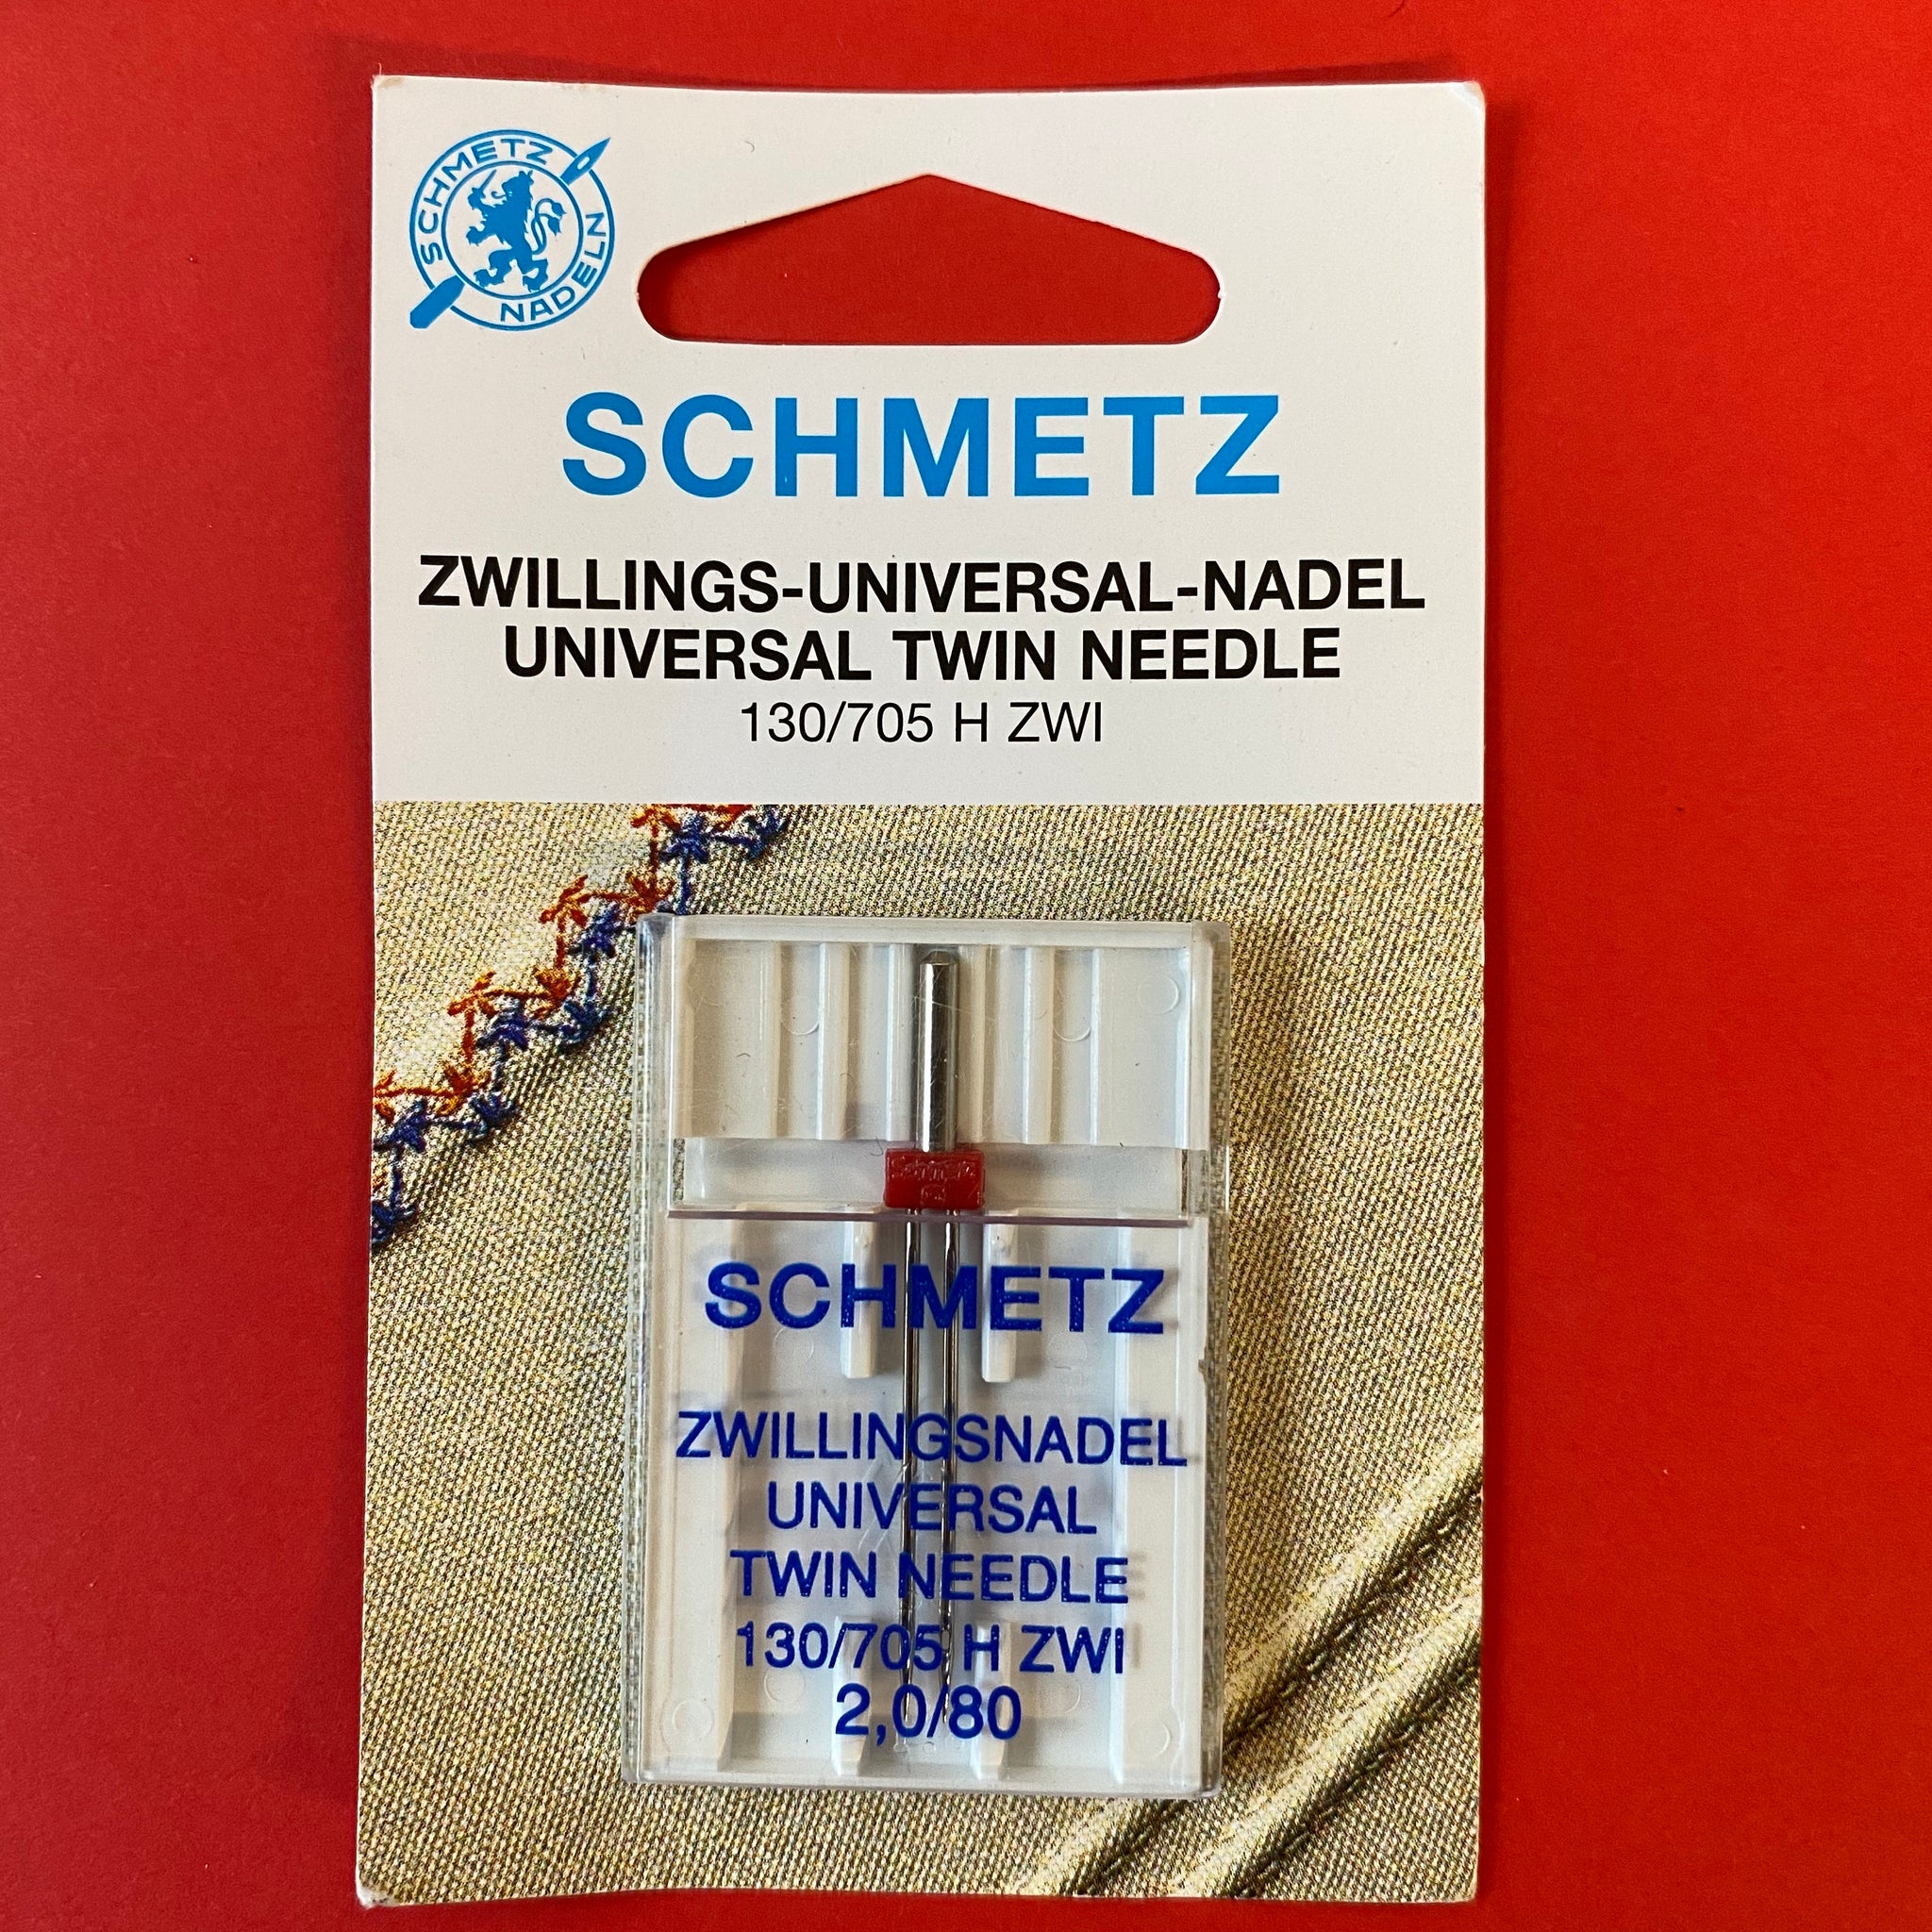 Schmetz Universal Twin Needle size 80, 2mm gap